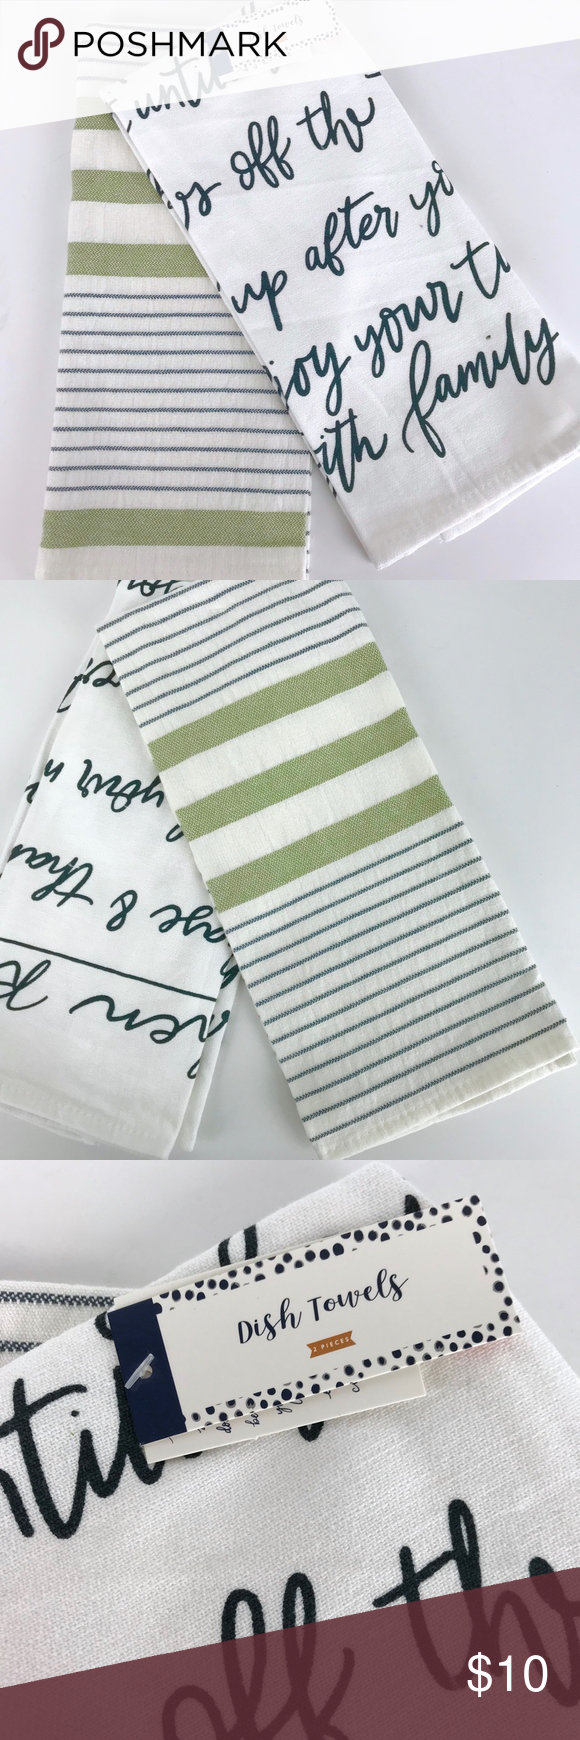 Set of 2 Kitchen Towels - Stripes & Kitchen Rules Set of 2 Kitchen Towels - Stripes & Kitchen Rules  BRAND NEW WITH TAGS  Who doesn't love a cute tea towel? Cute sage green and grey blue striped towel Also a kitchen rules script towel in grey blue print Last photo shows the phrasing on the script towel 100% cotton  Machine washable Brand new 15 X 25 inches   Bin3 Accents Decor #kitchenrules Set of 2 Kitchen Towels - Stripes & Kitchen Rules Set of 2 Kitchen Towels - Stripes & Kitchen Rules  BRA #kitchenrules